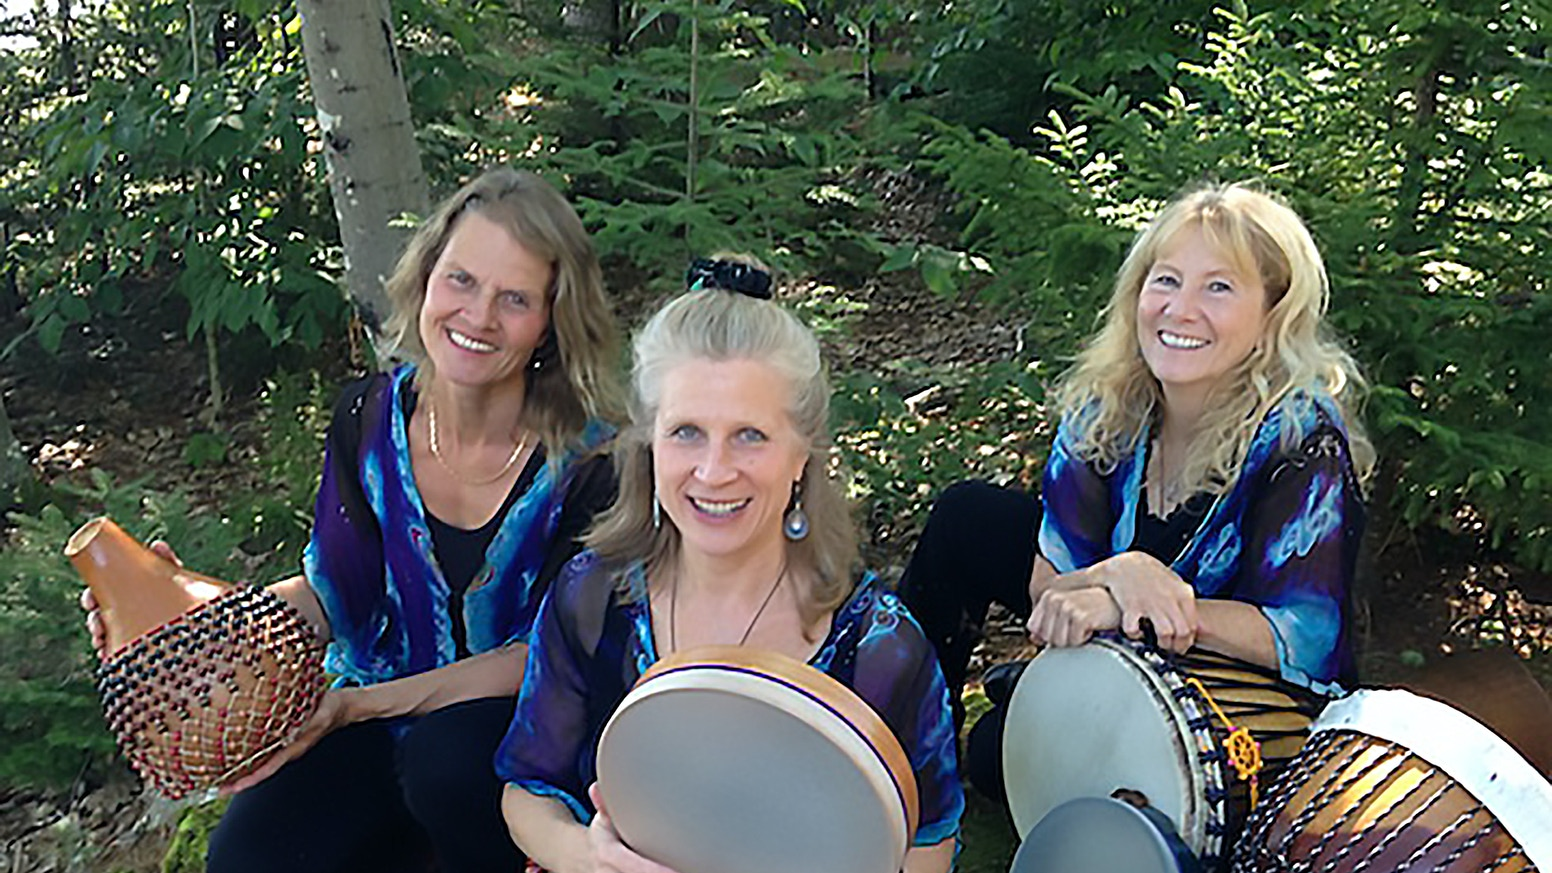 Our campaign was a resounding success and we surpassed our goal! Your support has made it possible to complete our CD and to bring our teachings and music abroad. With loving gratitude we thank you so much. Stay tuned for more. Big Hugs!